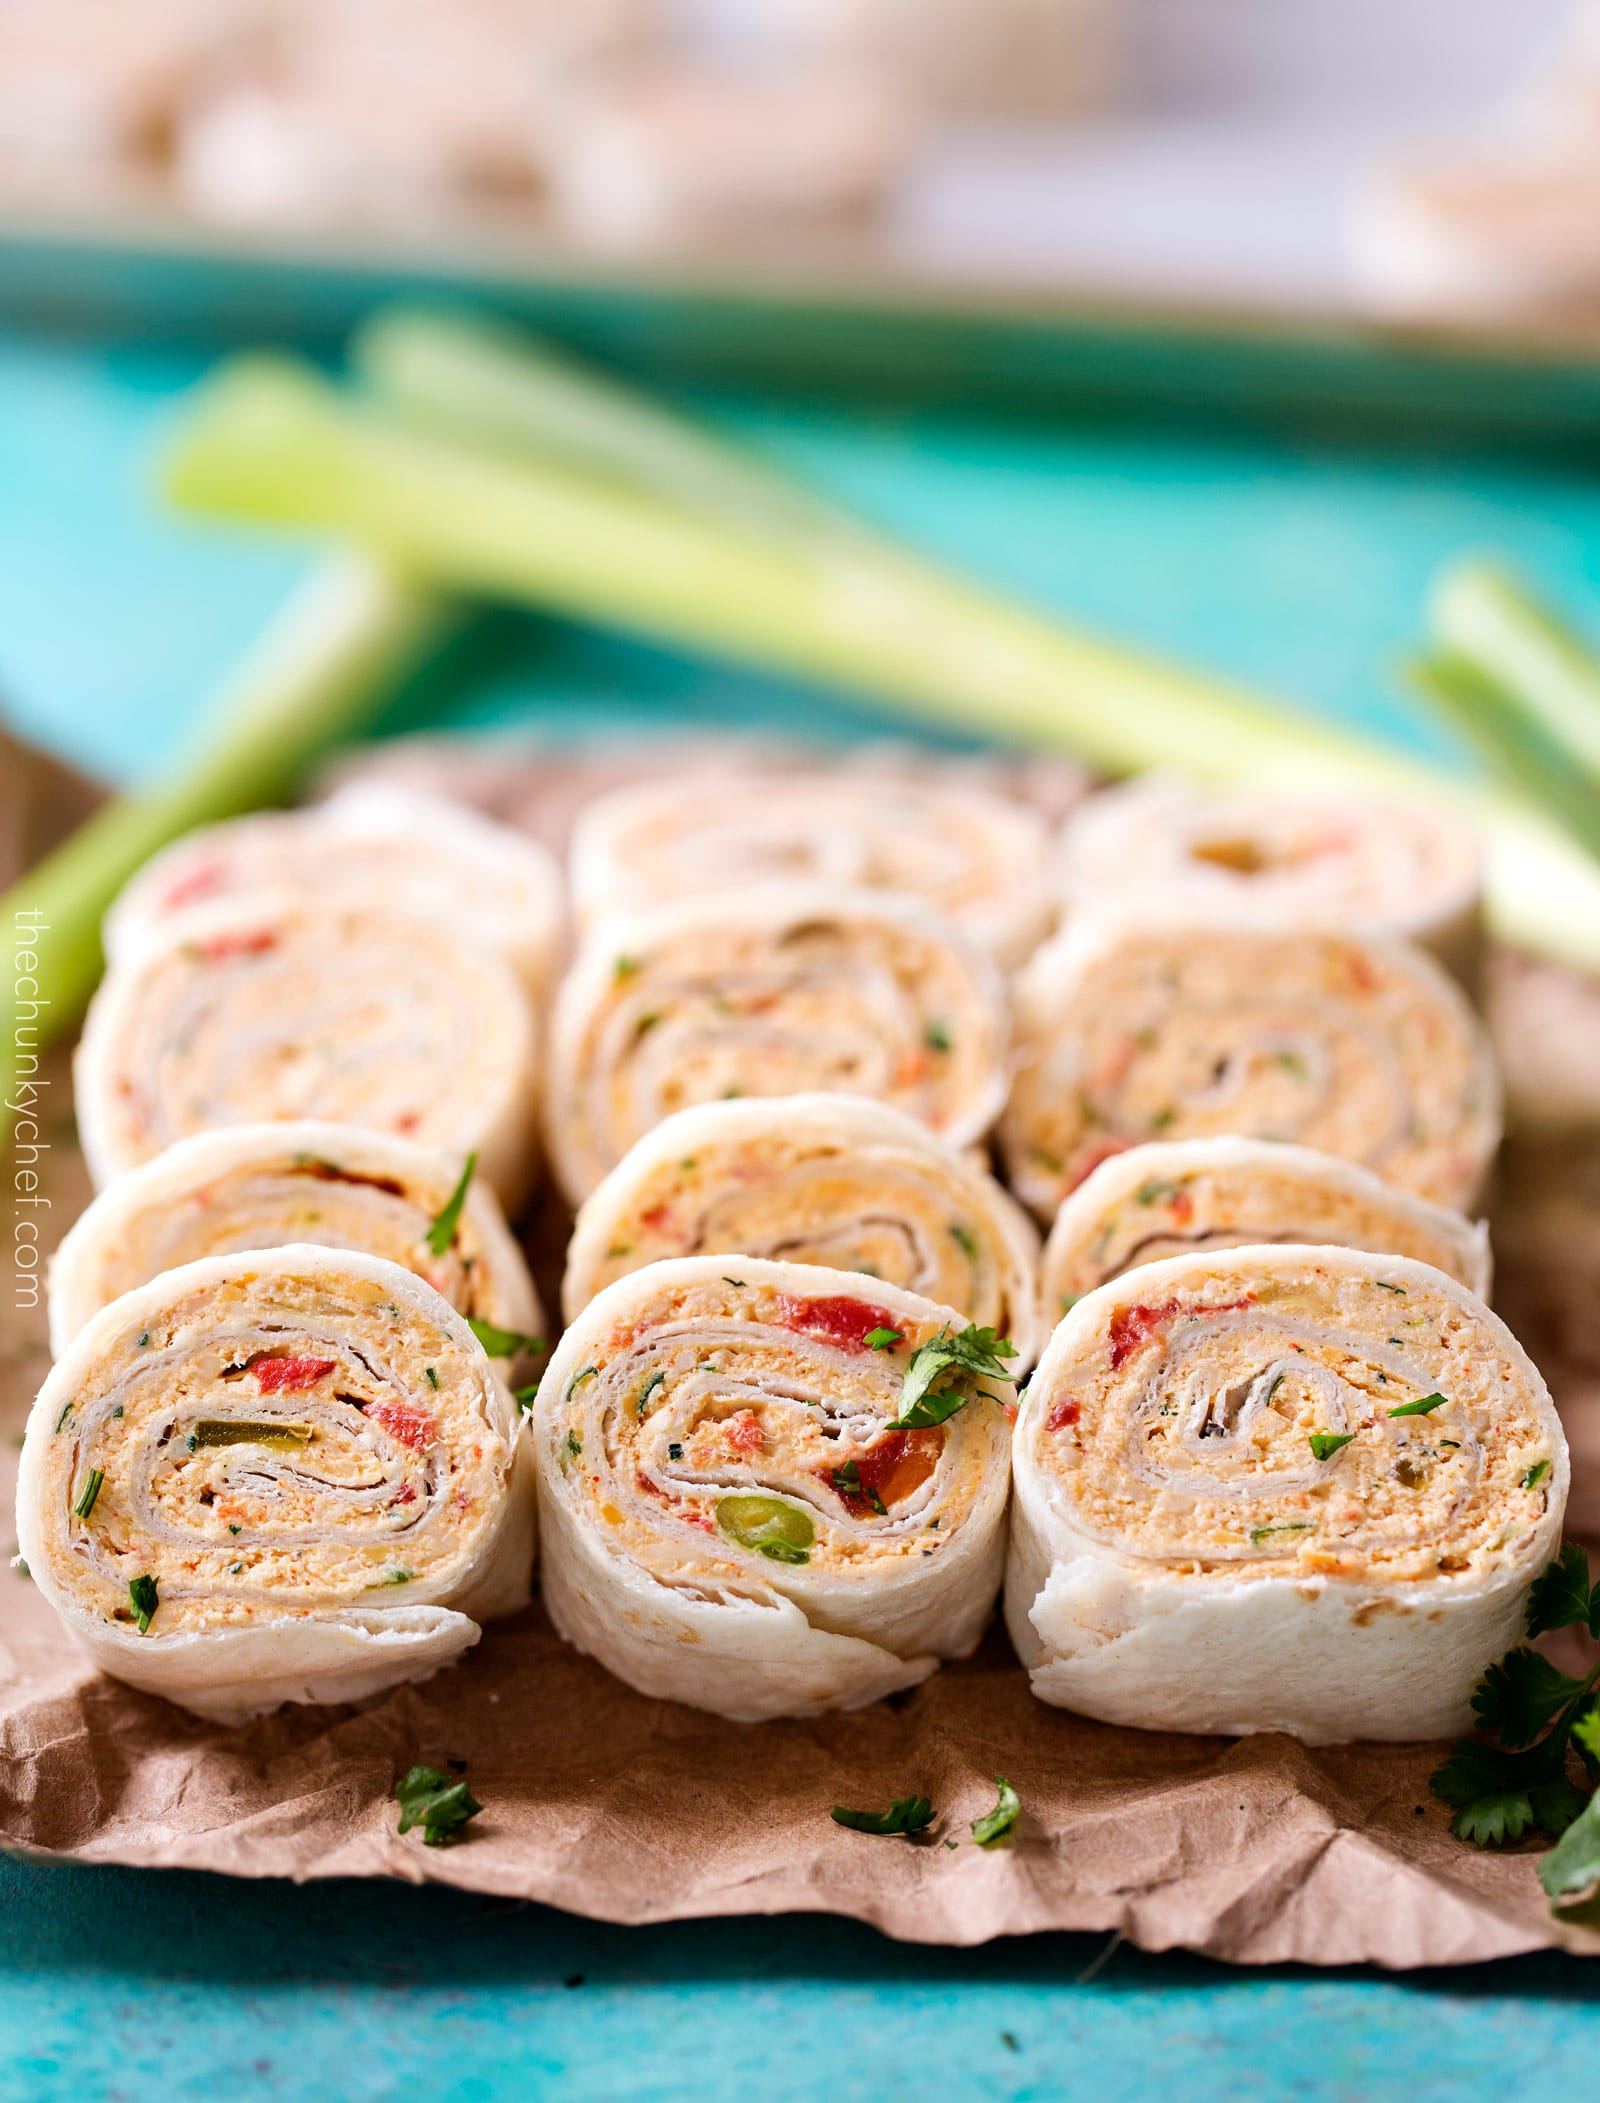 Chicken Taco Mexican Pinwheels | These pinwheels are filled with a creamy chicken taco filling, which is easily customizable, and rolled up to make a perfect appetizer or party food! | http://thechunkychef.com